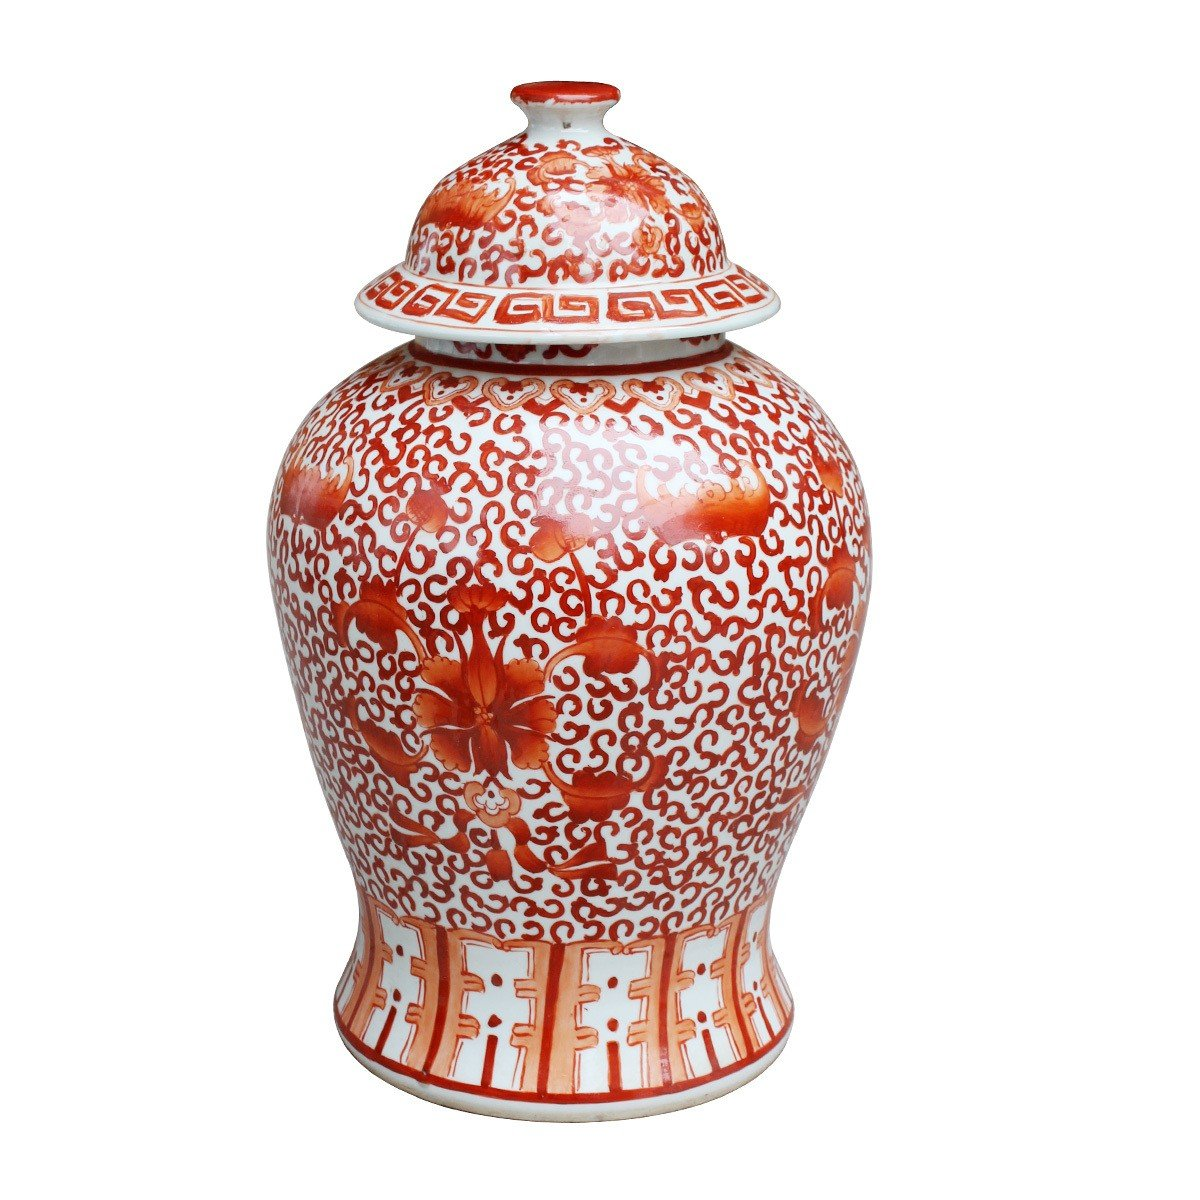 Chinese Ceramic Temple Jar- Coral Red Twisted Lotus Decorative Storage Container by Legends of Asia